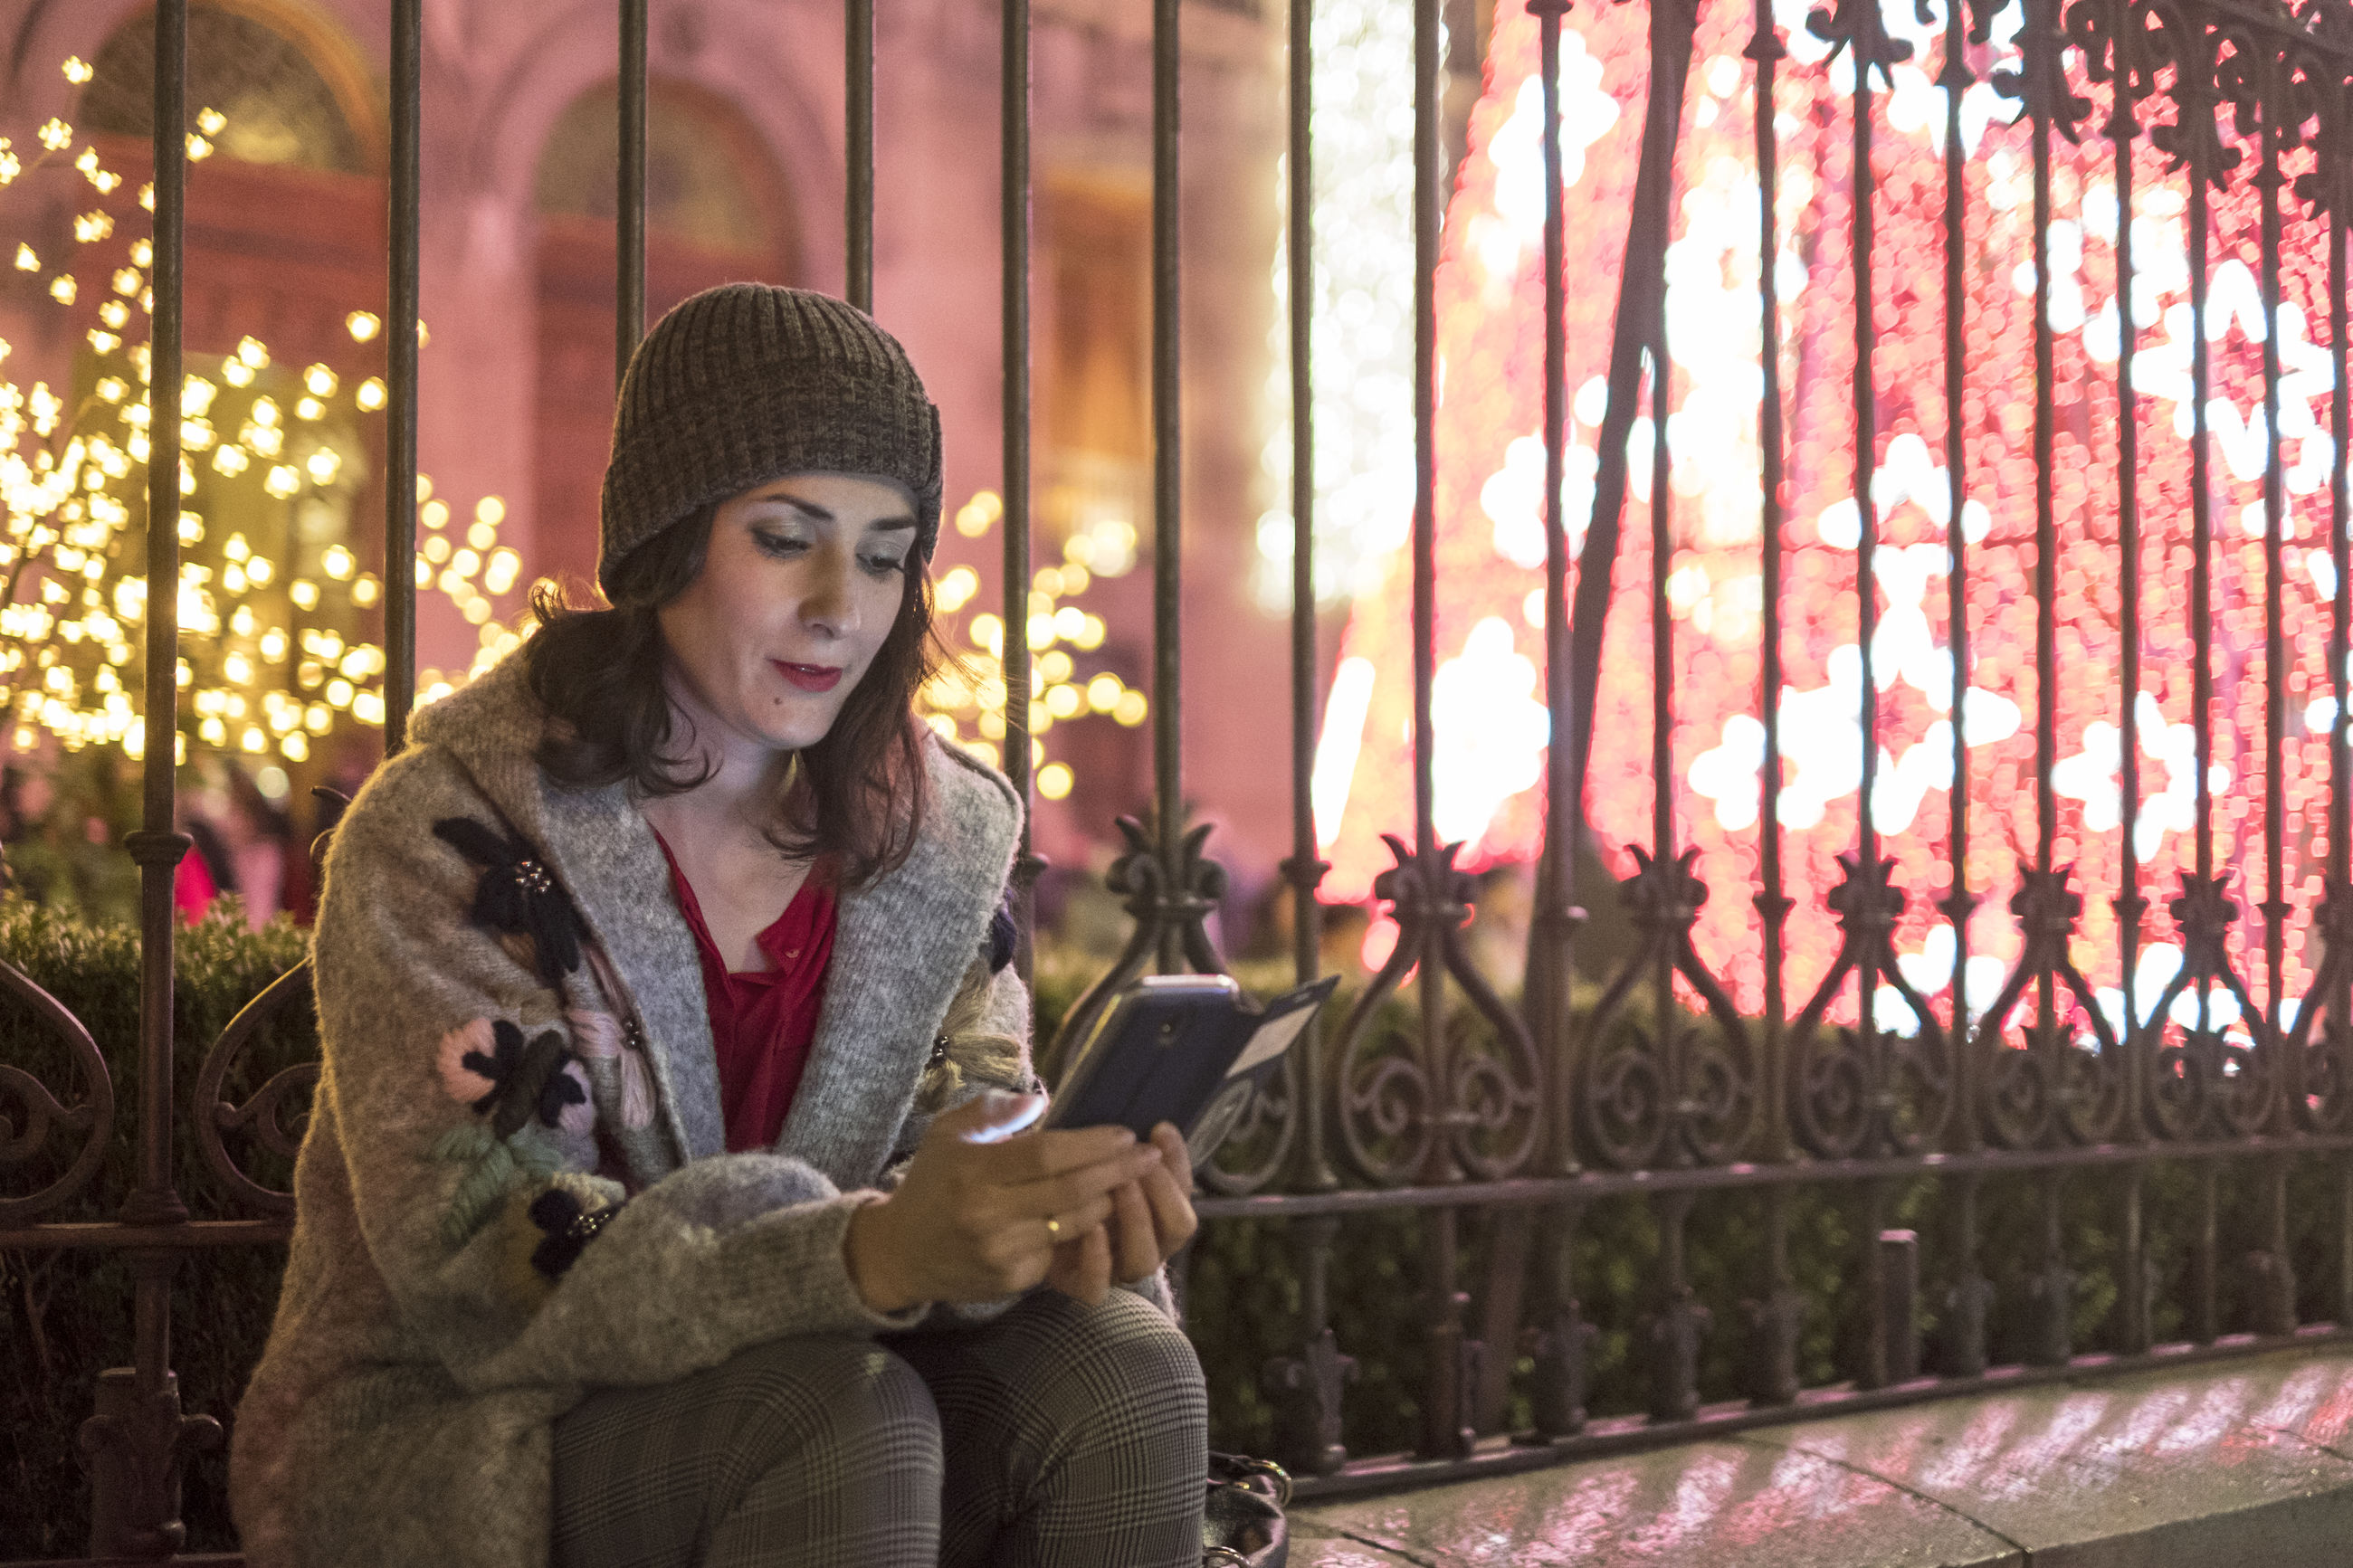 Woman using mobile phone while sitting in illuminated city at night